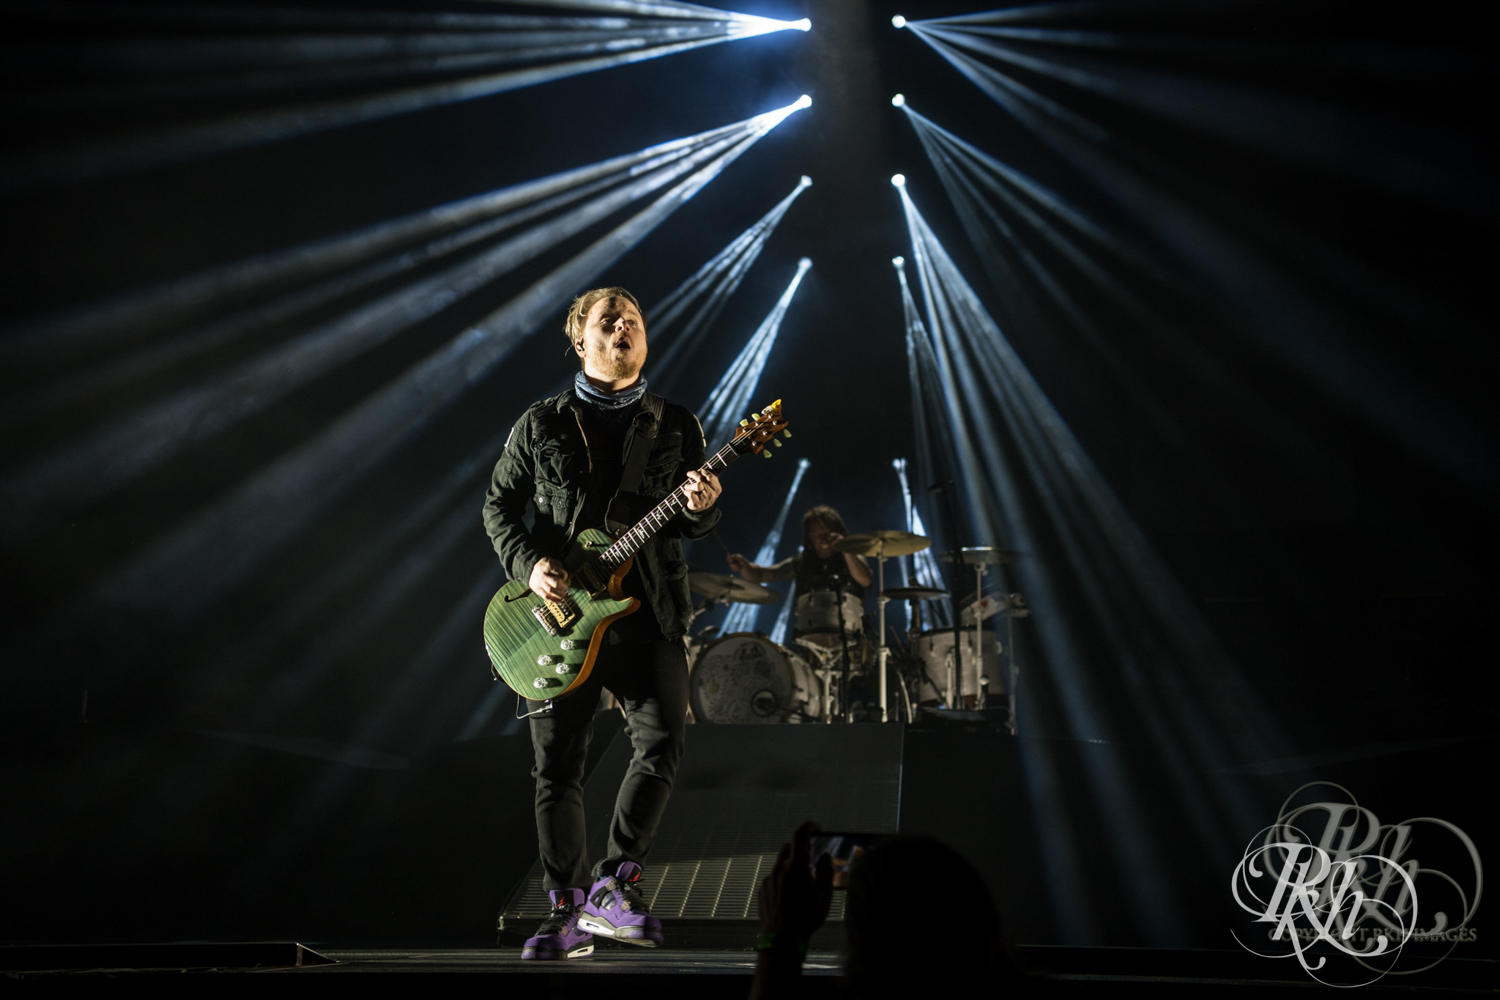 Shinedown - Minnesota Concert Photography - Target Center - Minneapolis - RKH Images (6 of 19).jpg